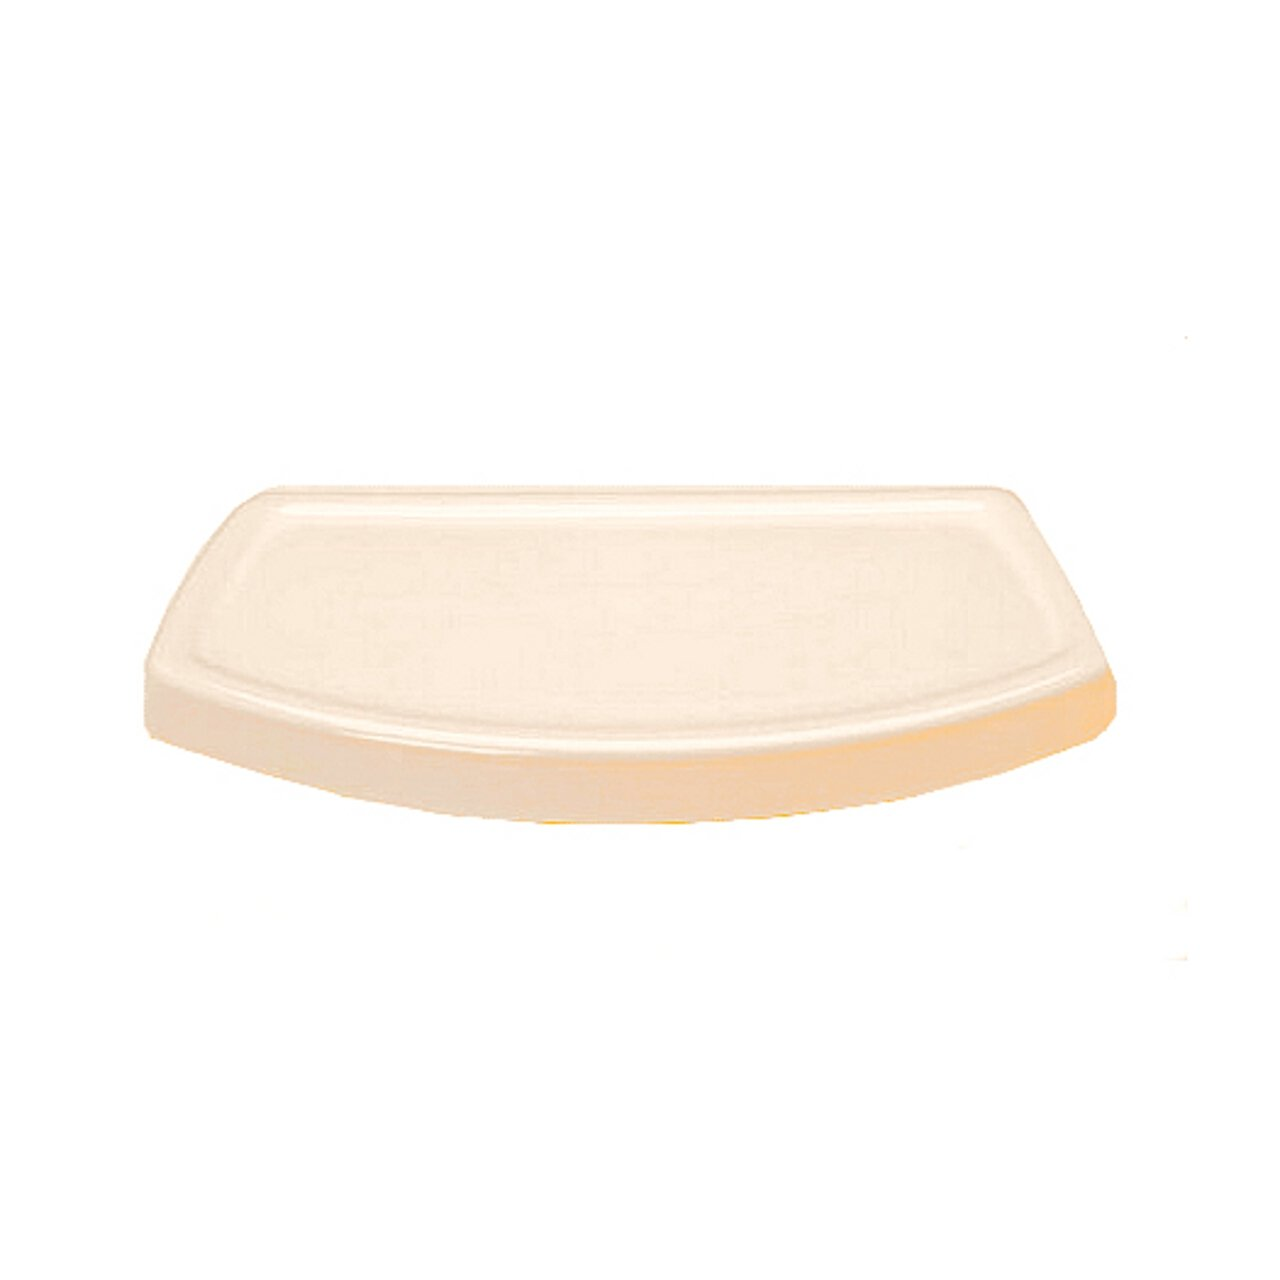 American Standard 735121-400.021 Cadet and Glenwall Right-Height Toilet Tank Cover for Models 4021, Bone by American Standard